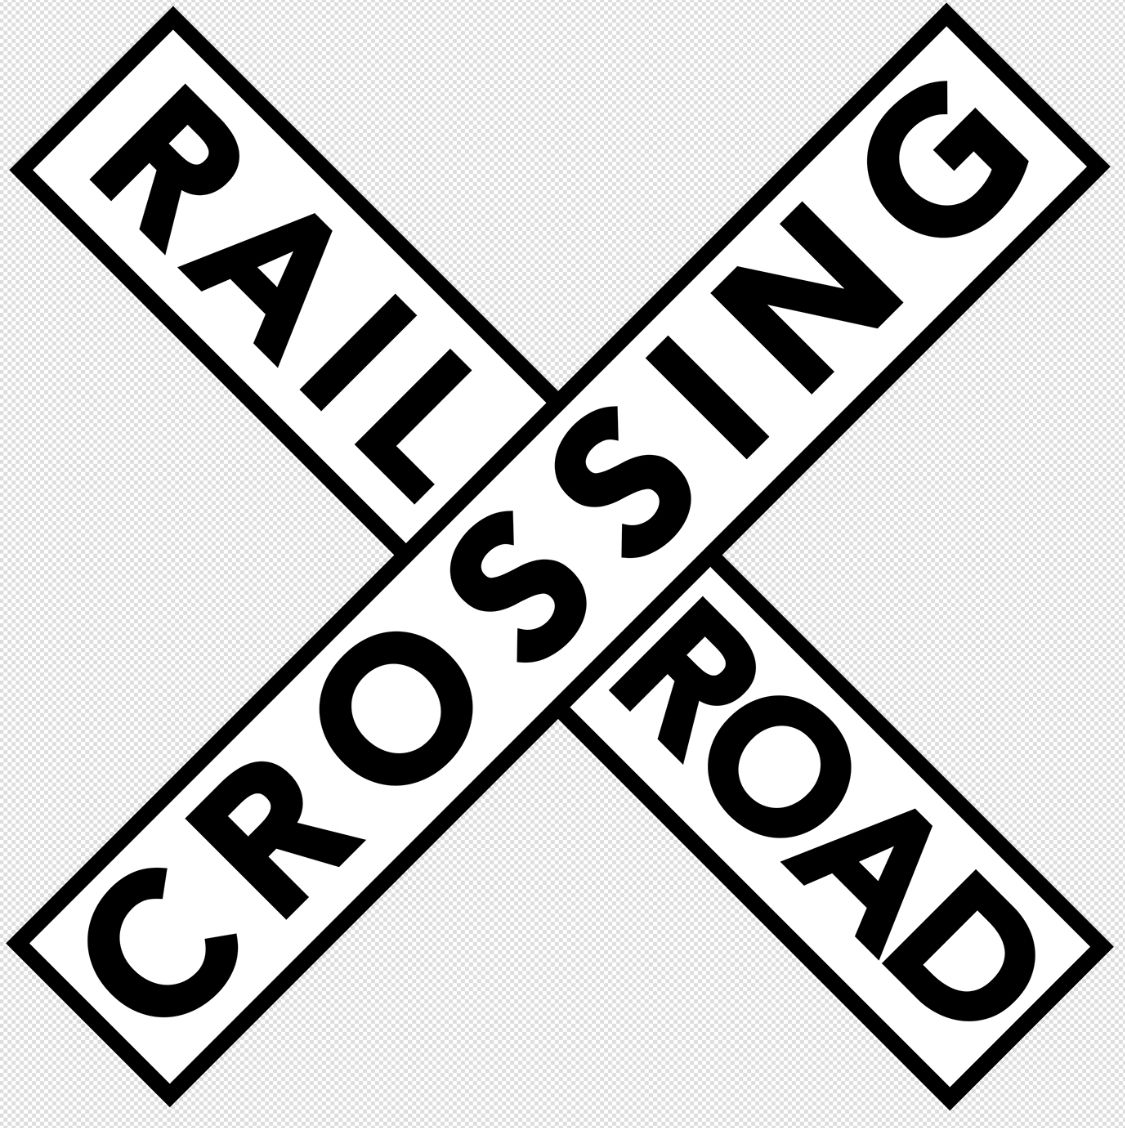 photograph regarding Railroad Crossing Sign Printable named Railroad Crossing Indication Clip Artwork or Printable Signs and symptoms against